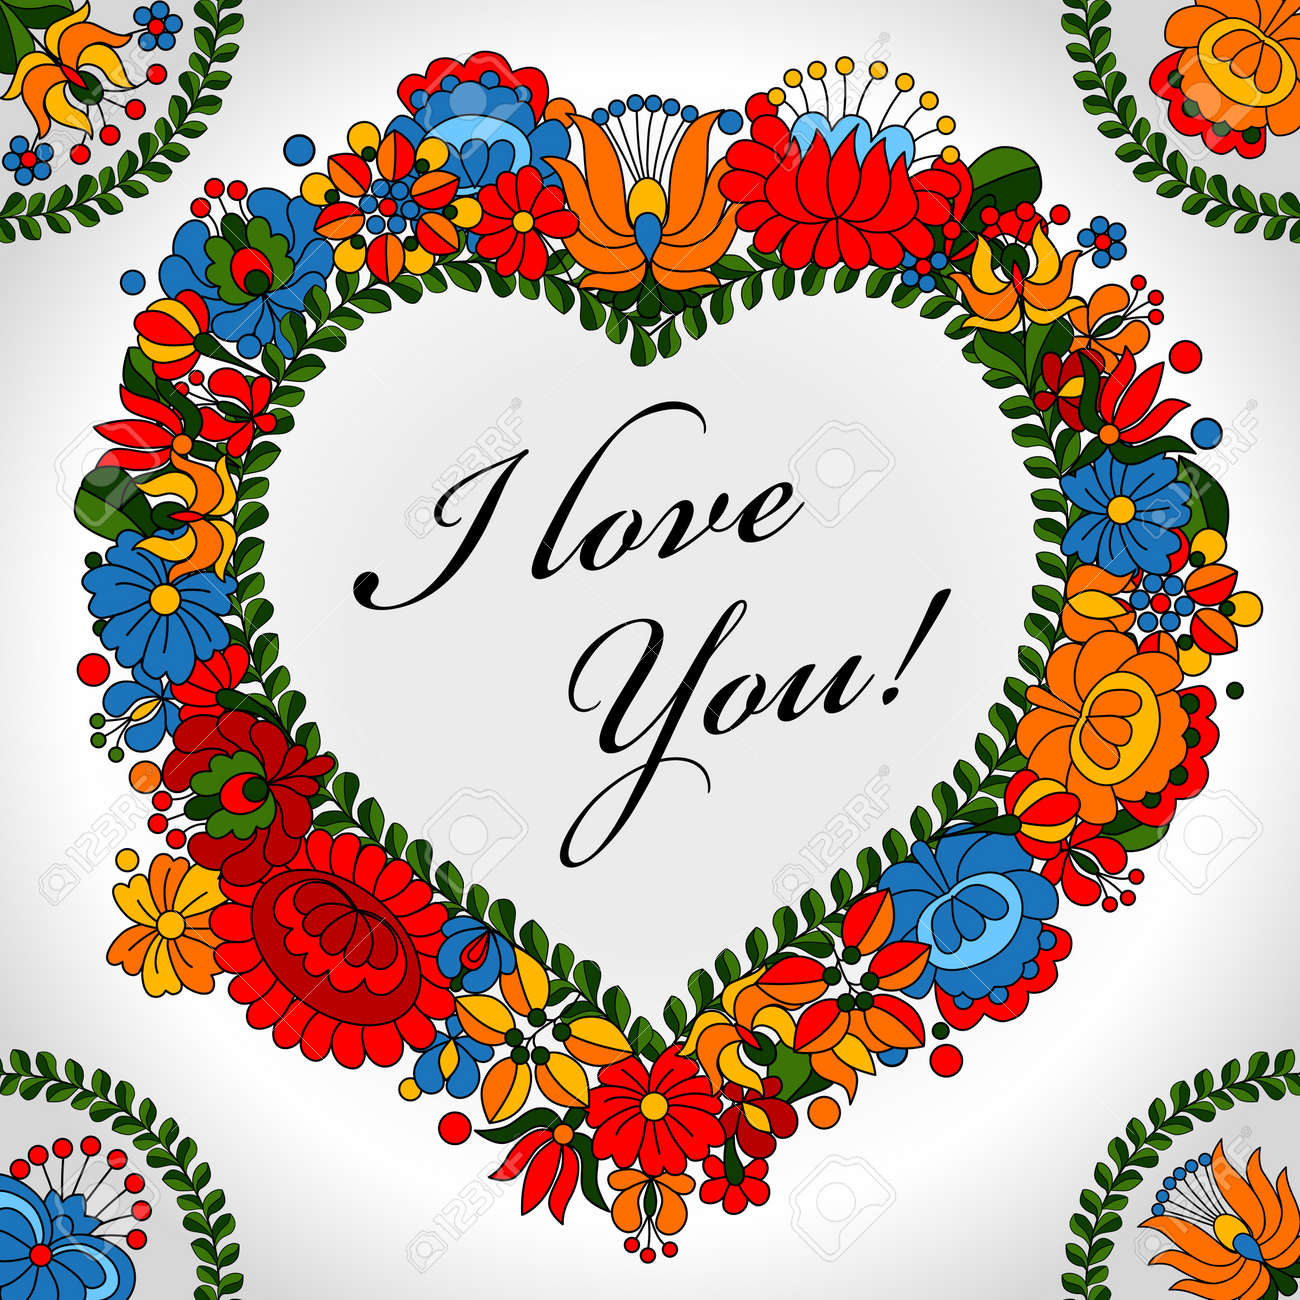 Hungarian traditional folk ornament heart background template - 14580847